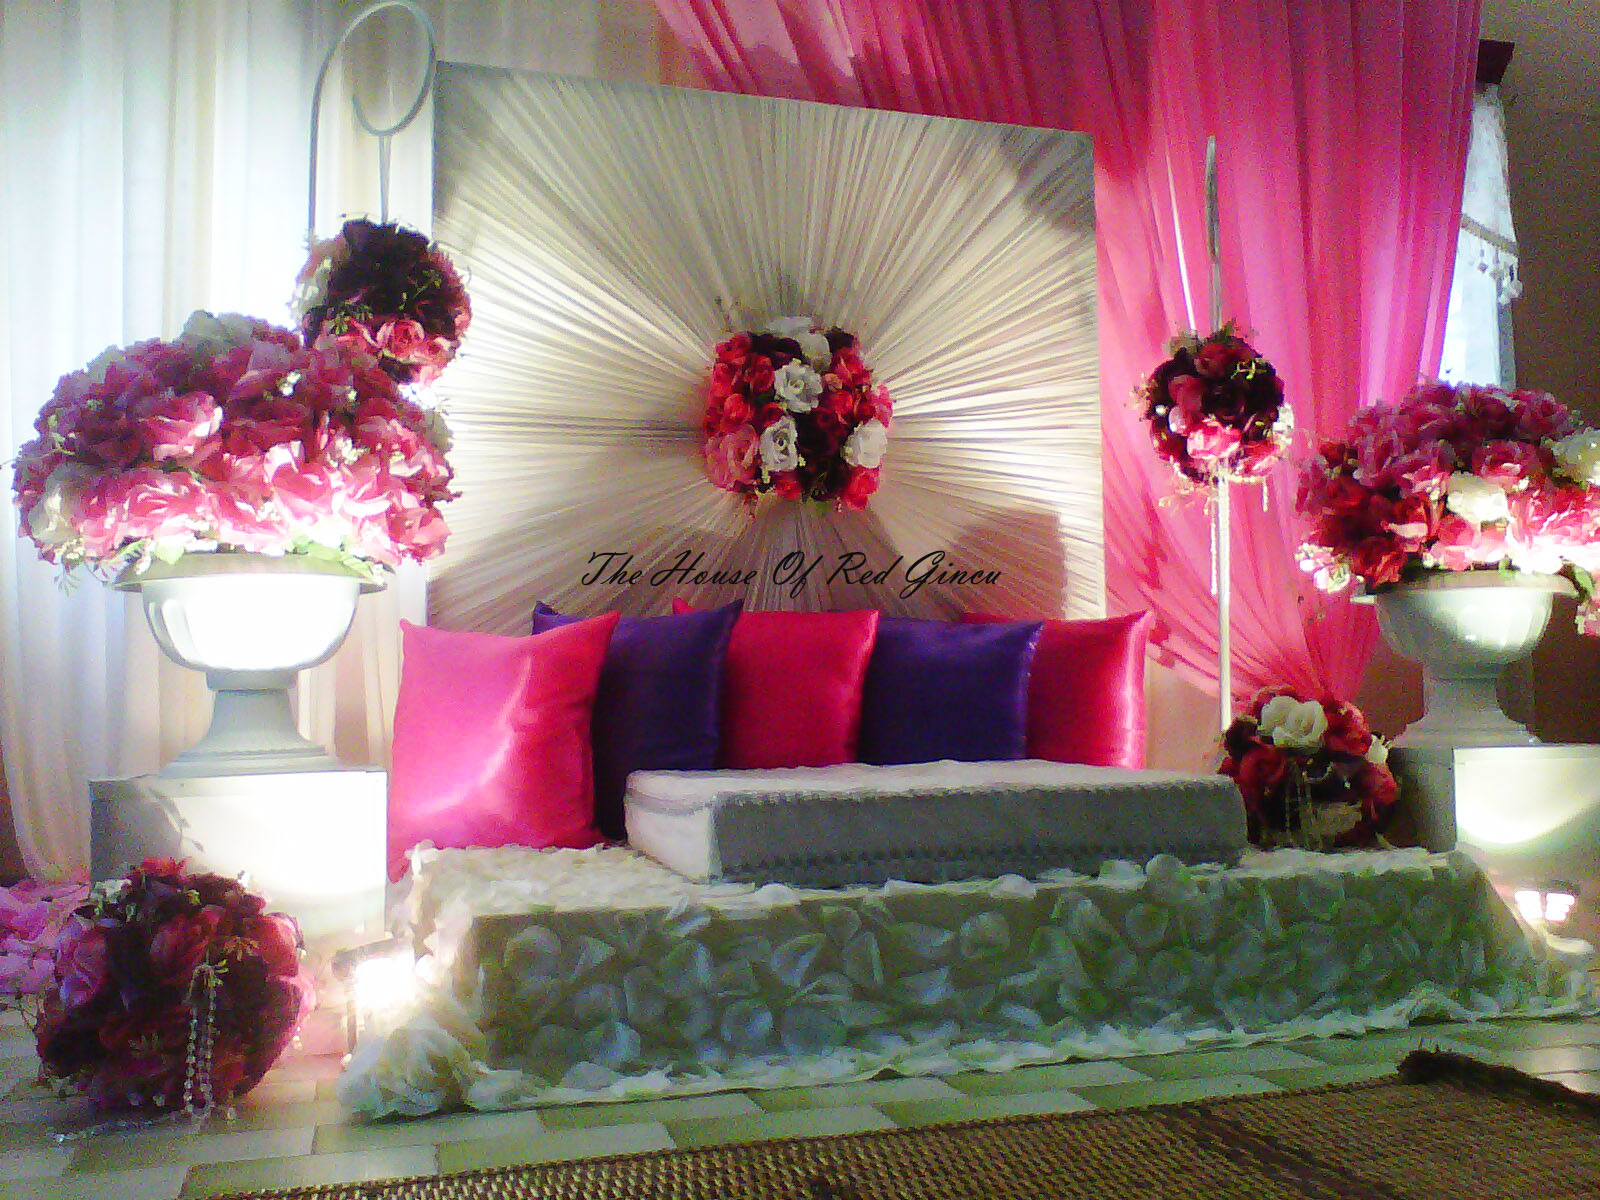 wedding boutique the house of red gincu my sweetheart